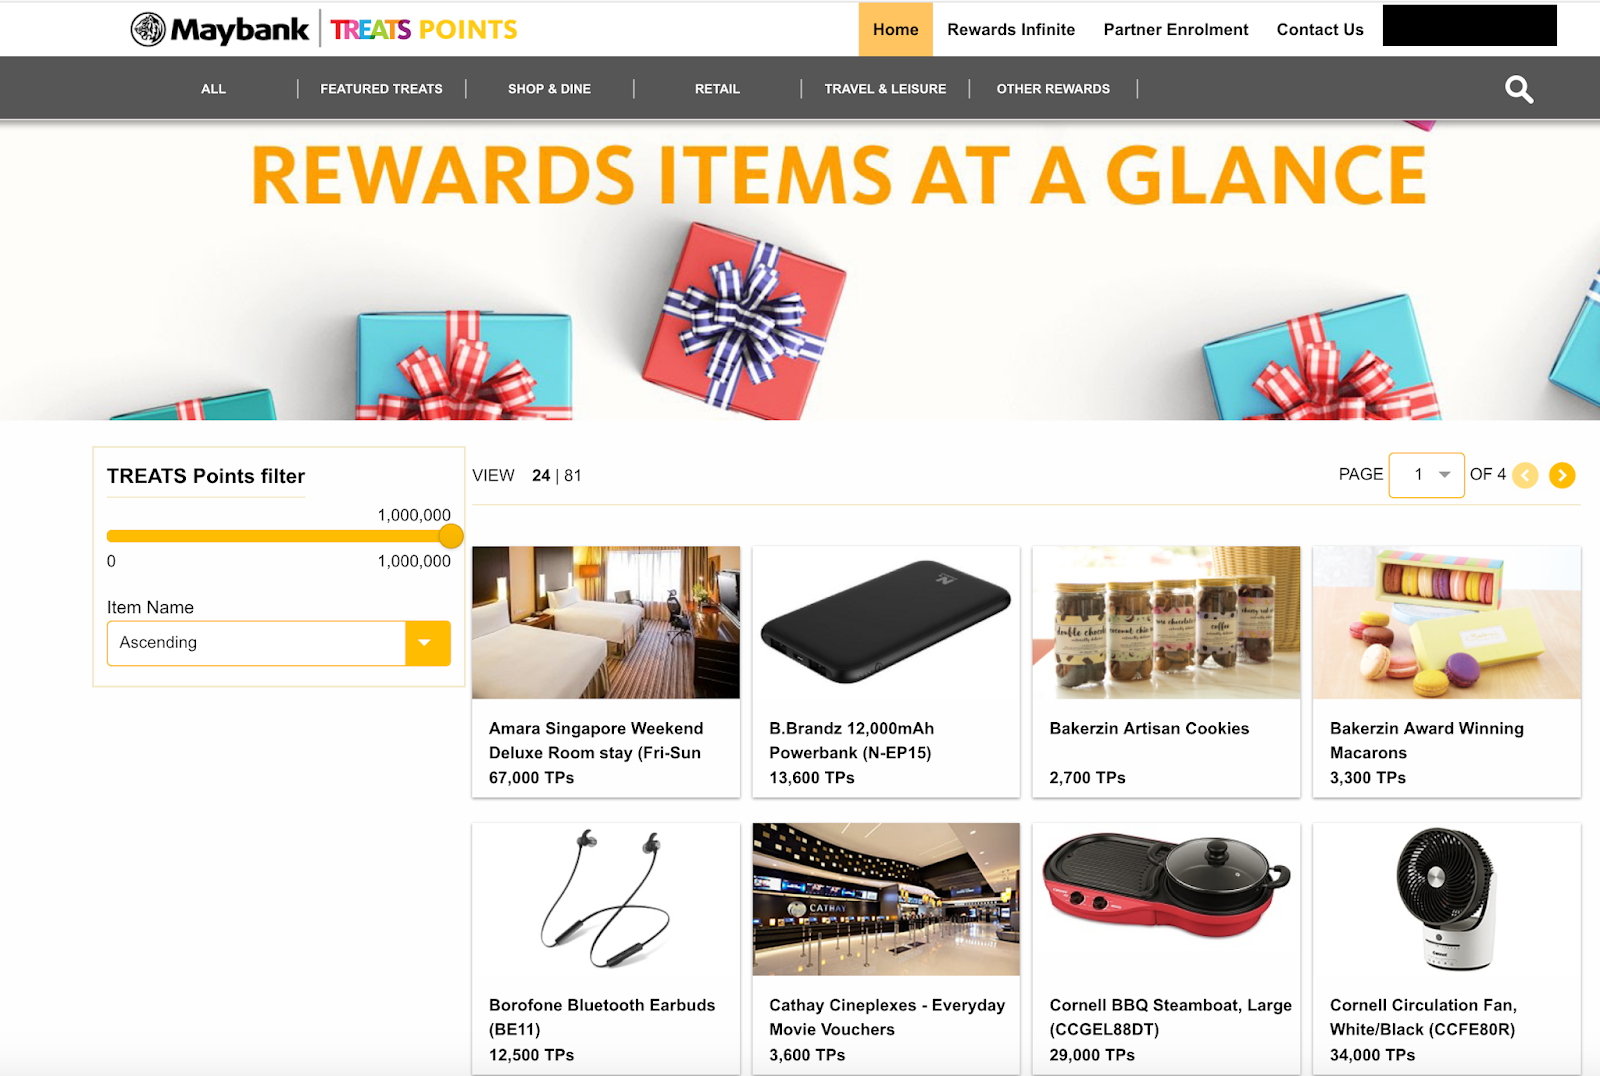 Maybank Treats Points Rewards Programme redemption options in